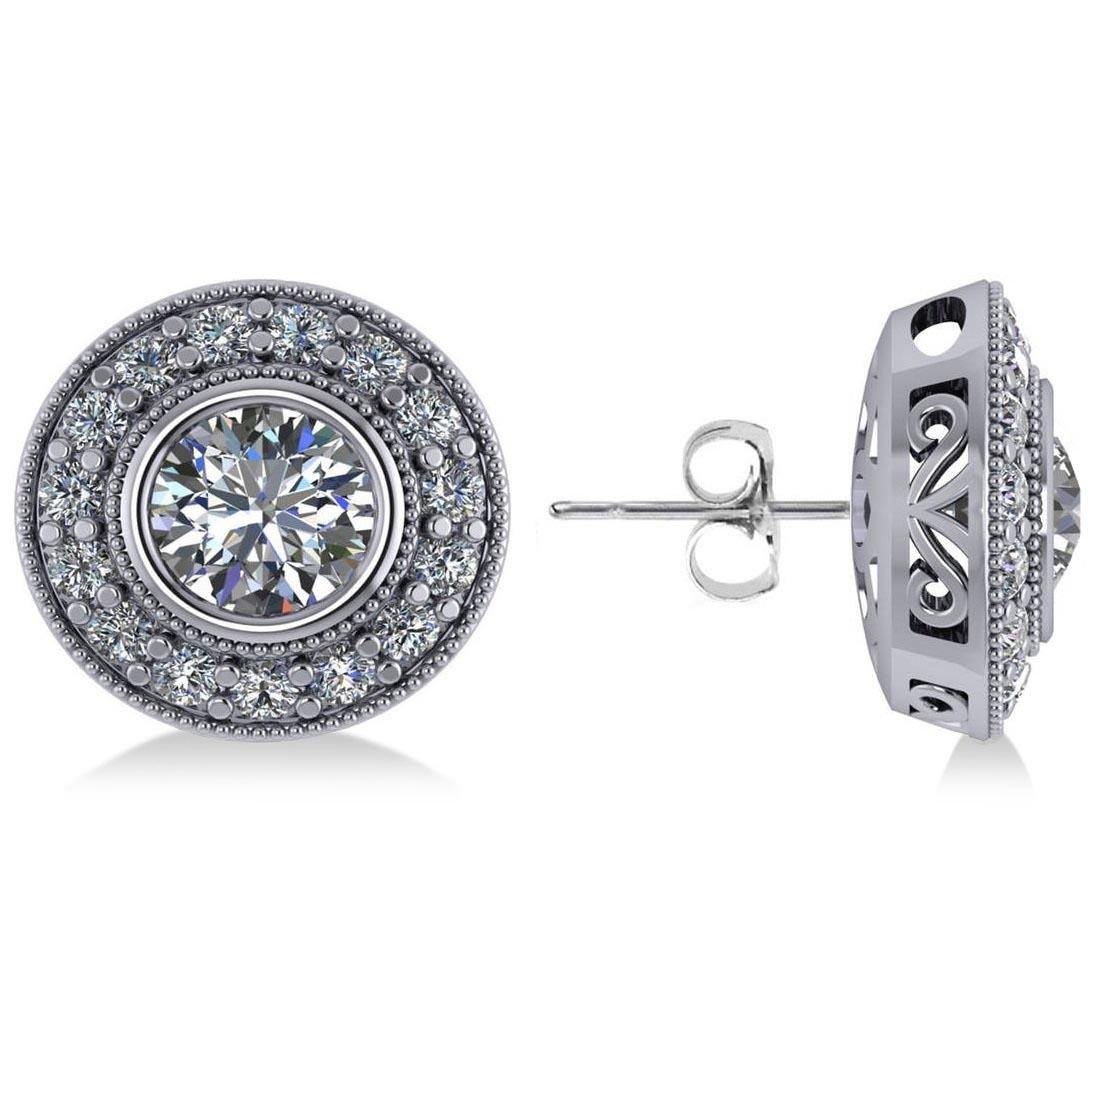 CERTIFIED 1.8 CTW D/SI1 ROUND DIAMOND HALO STUD EARRING